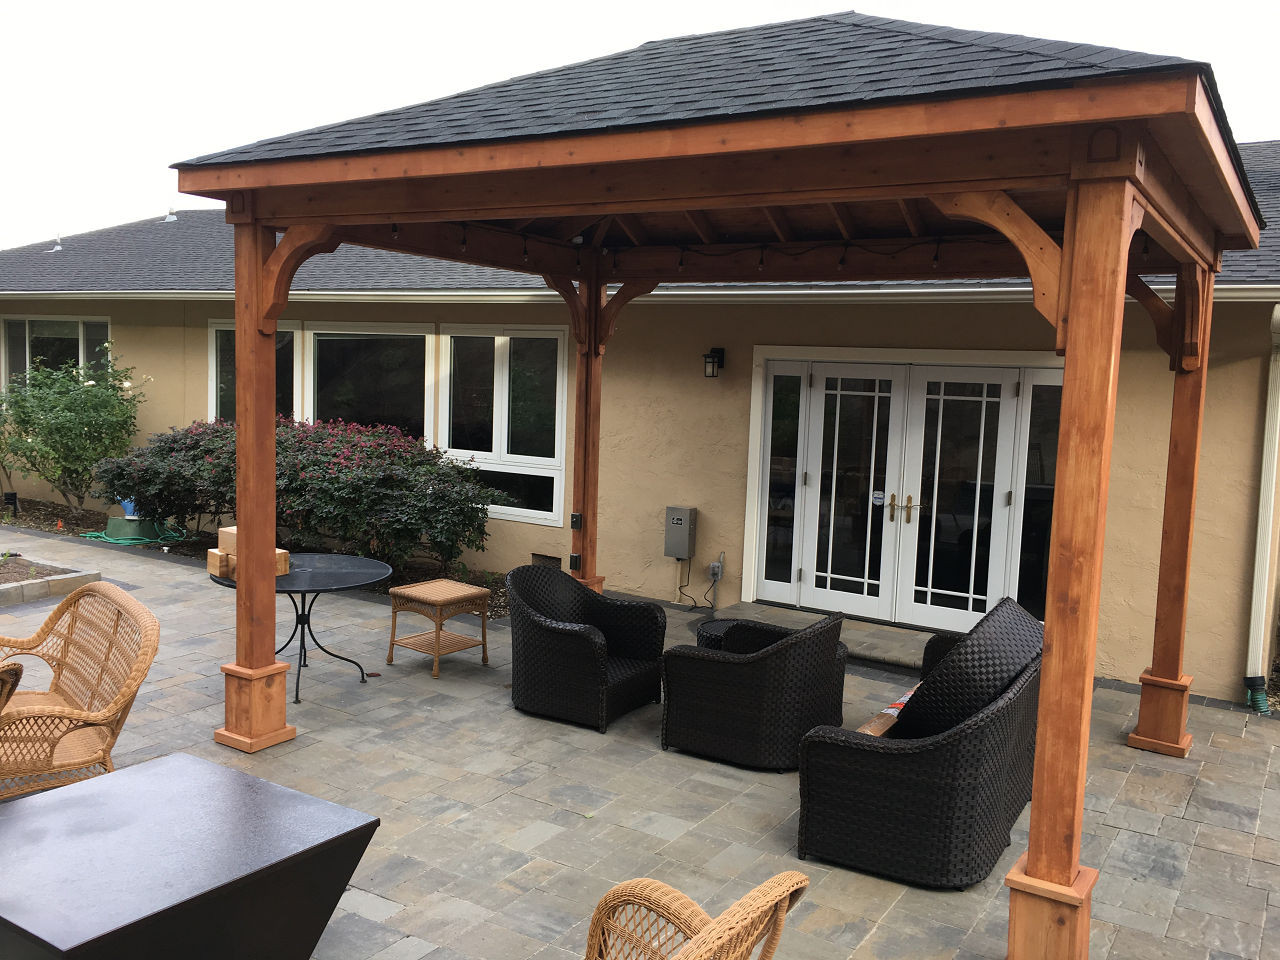 "14-3"" x 11'-0"" roof span Red Cedar Pavilion - Traditional Roof / 6""x6"" sq. columns extended length / Electrical kit / Heavy Duty Anchors / Black roof shingles / Sealant/stain combo by Sikkens #77 Red Cedar / San Rafael, CA."